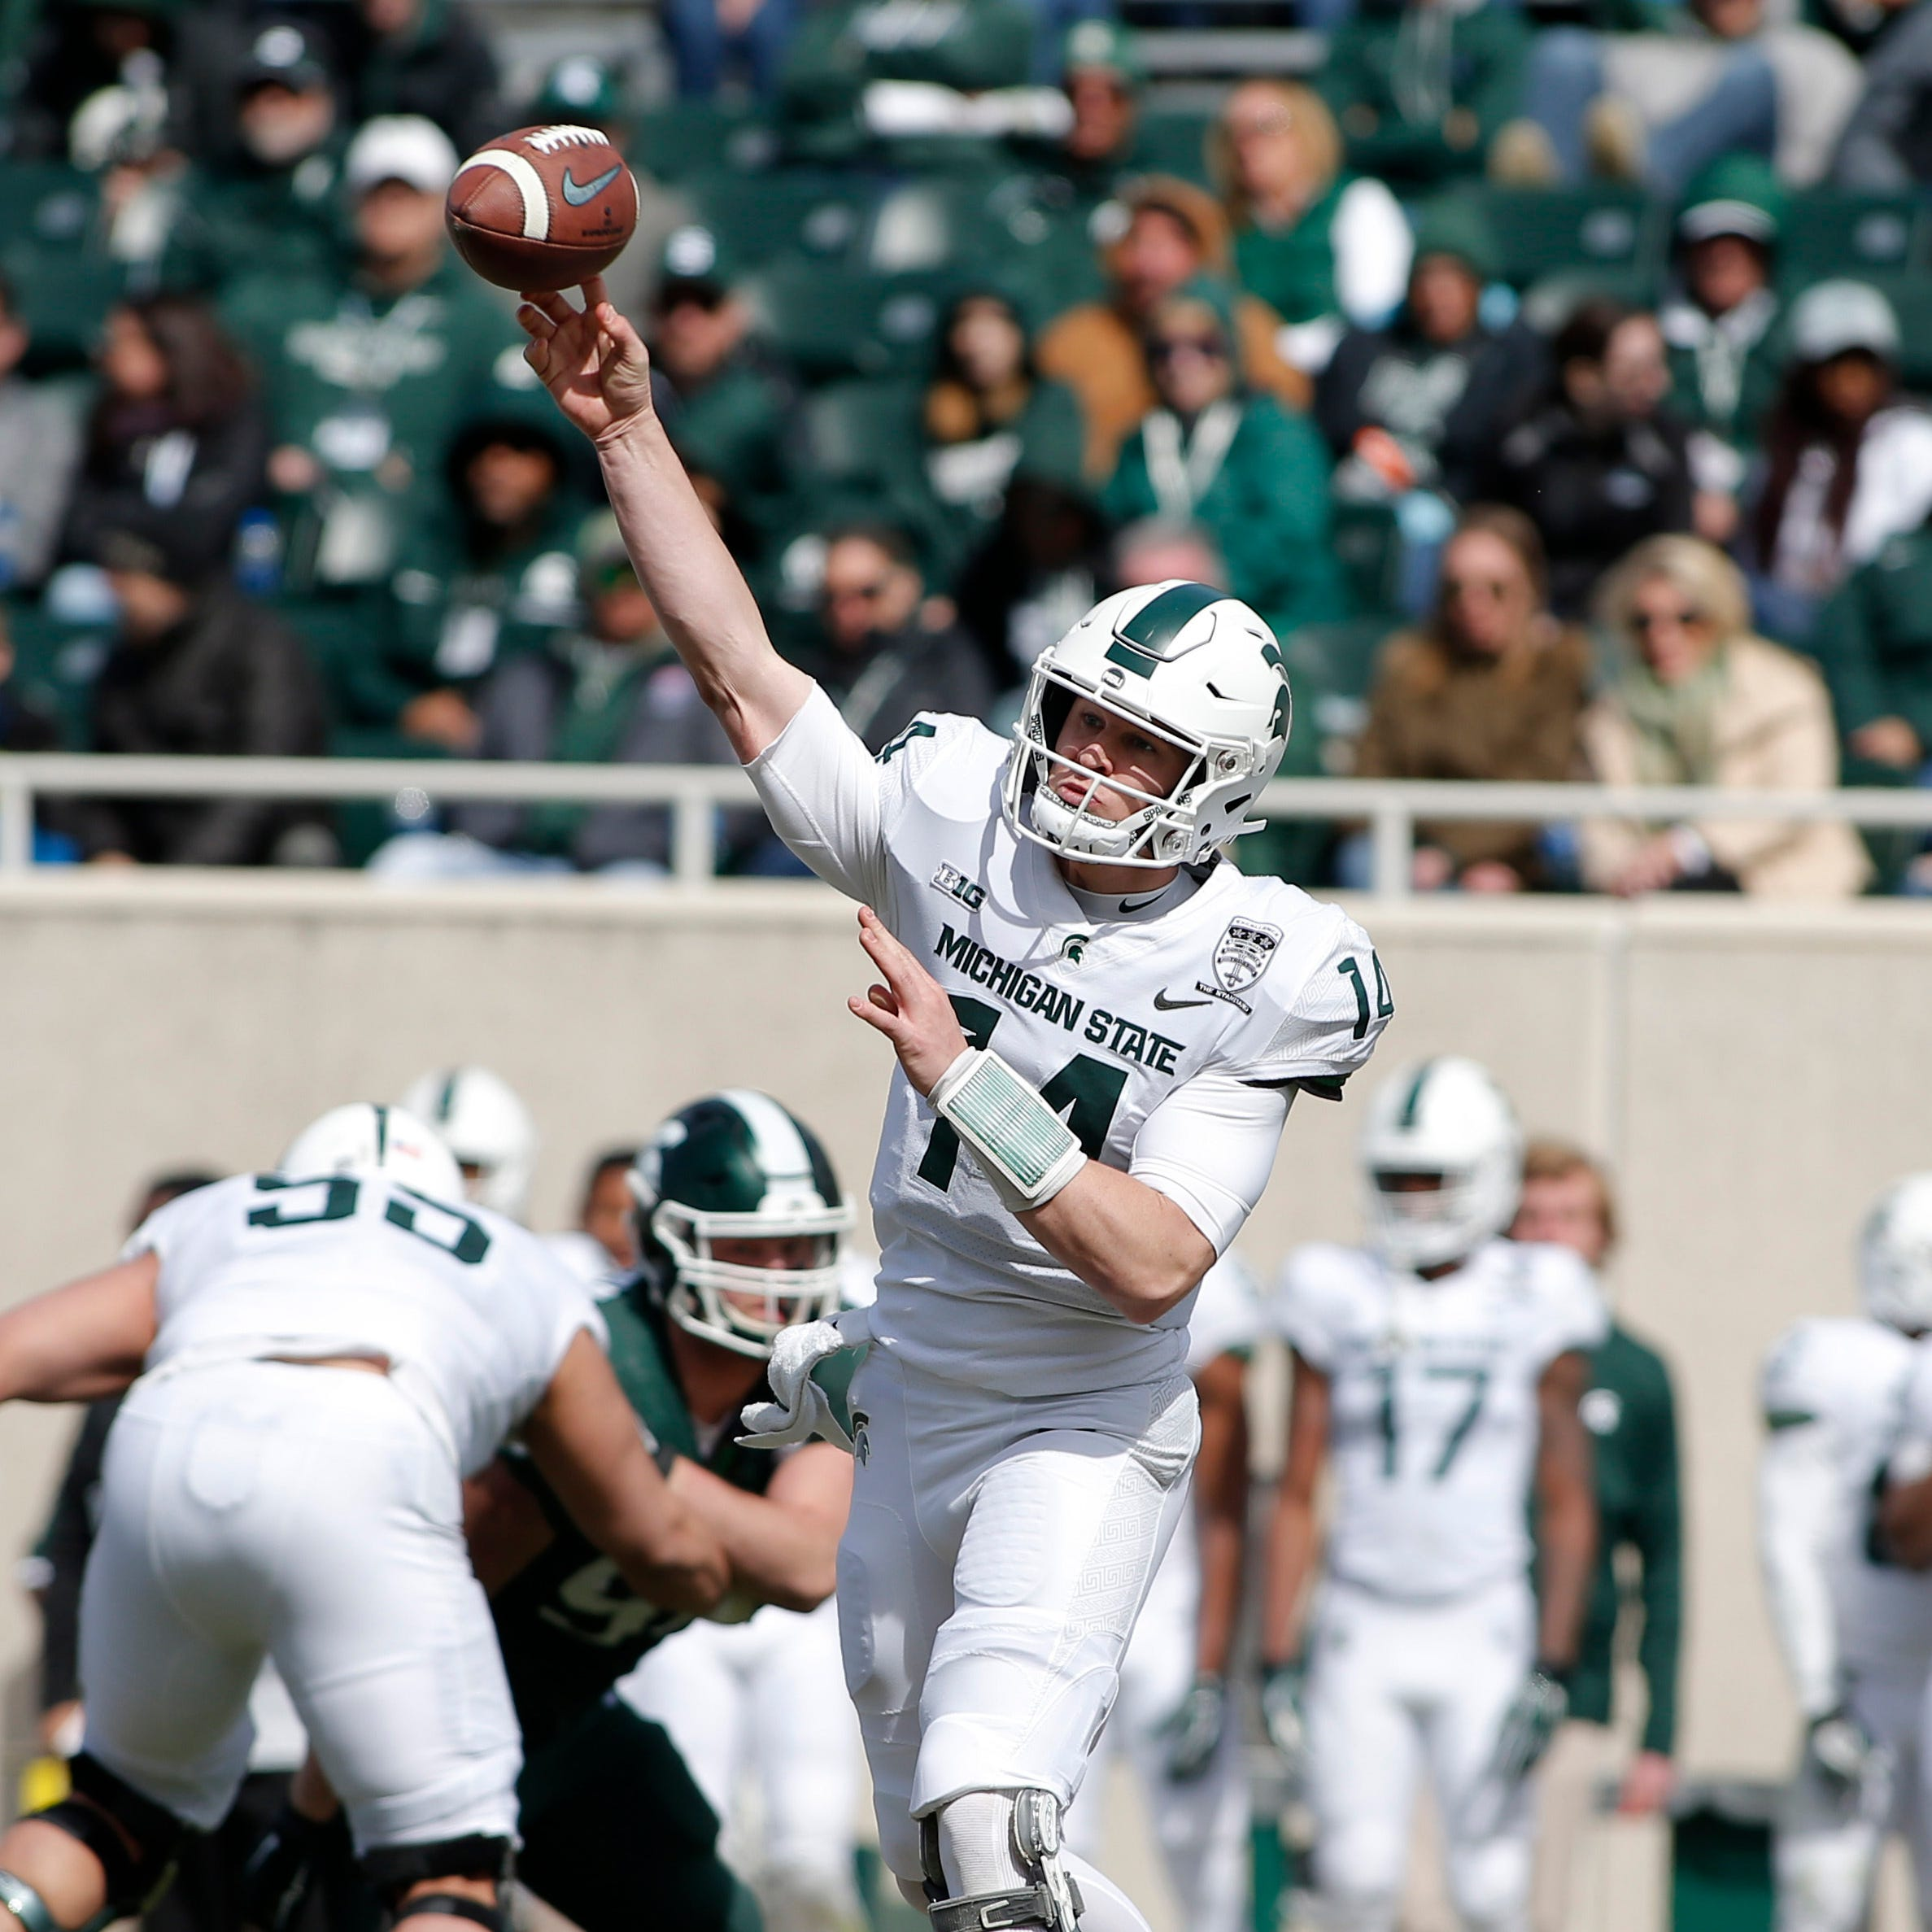 """MSU football game: Brian Lewerke looks healthy, sound sharp """"class ="""" more-section stories-thumb"""